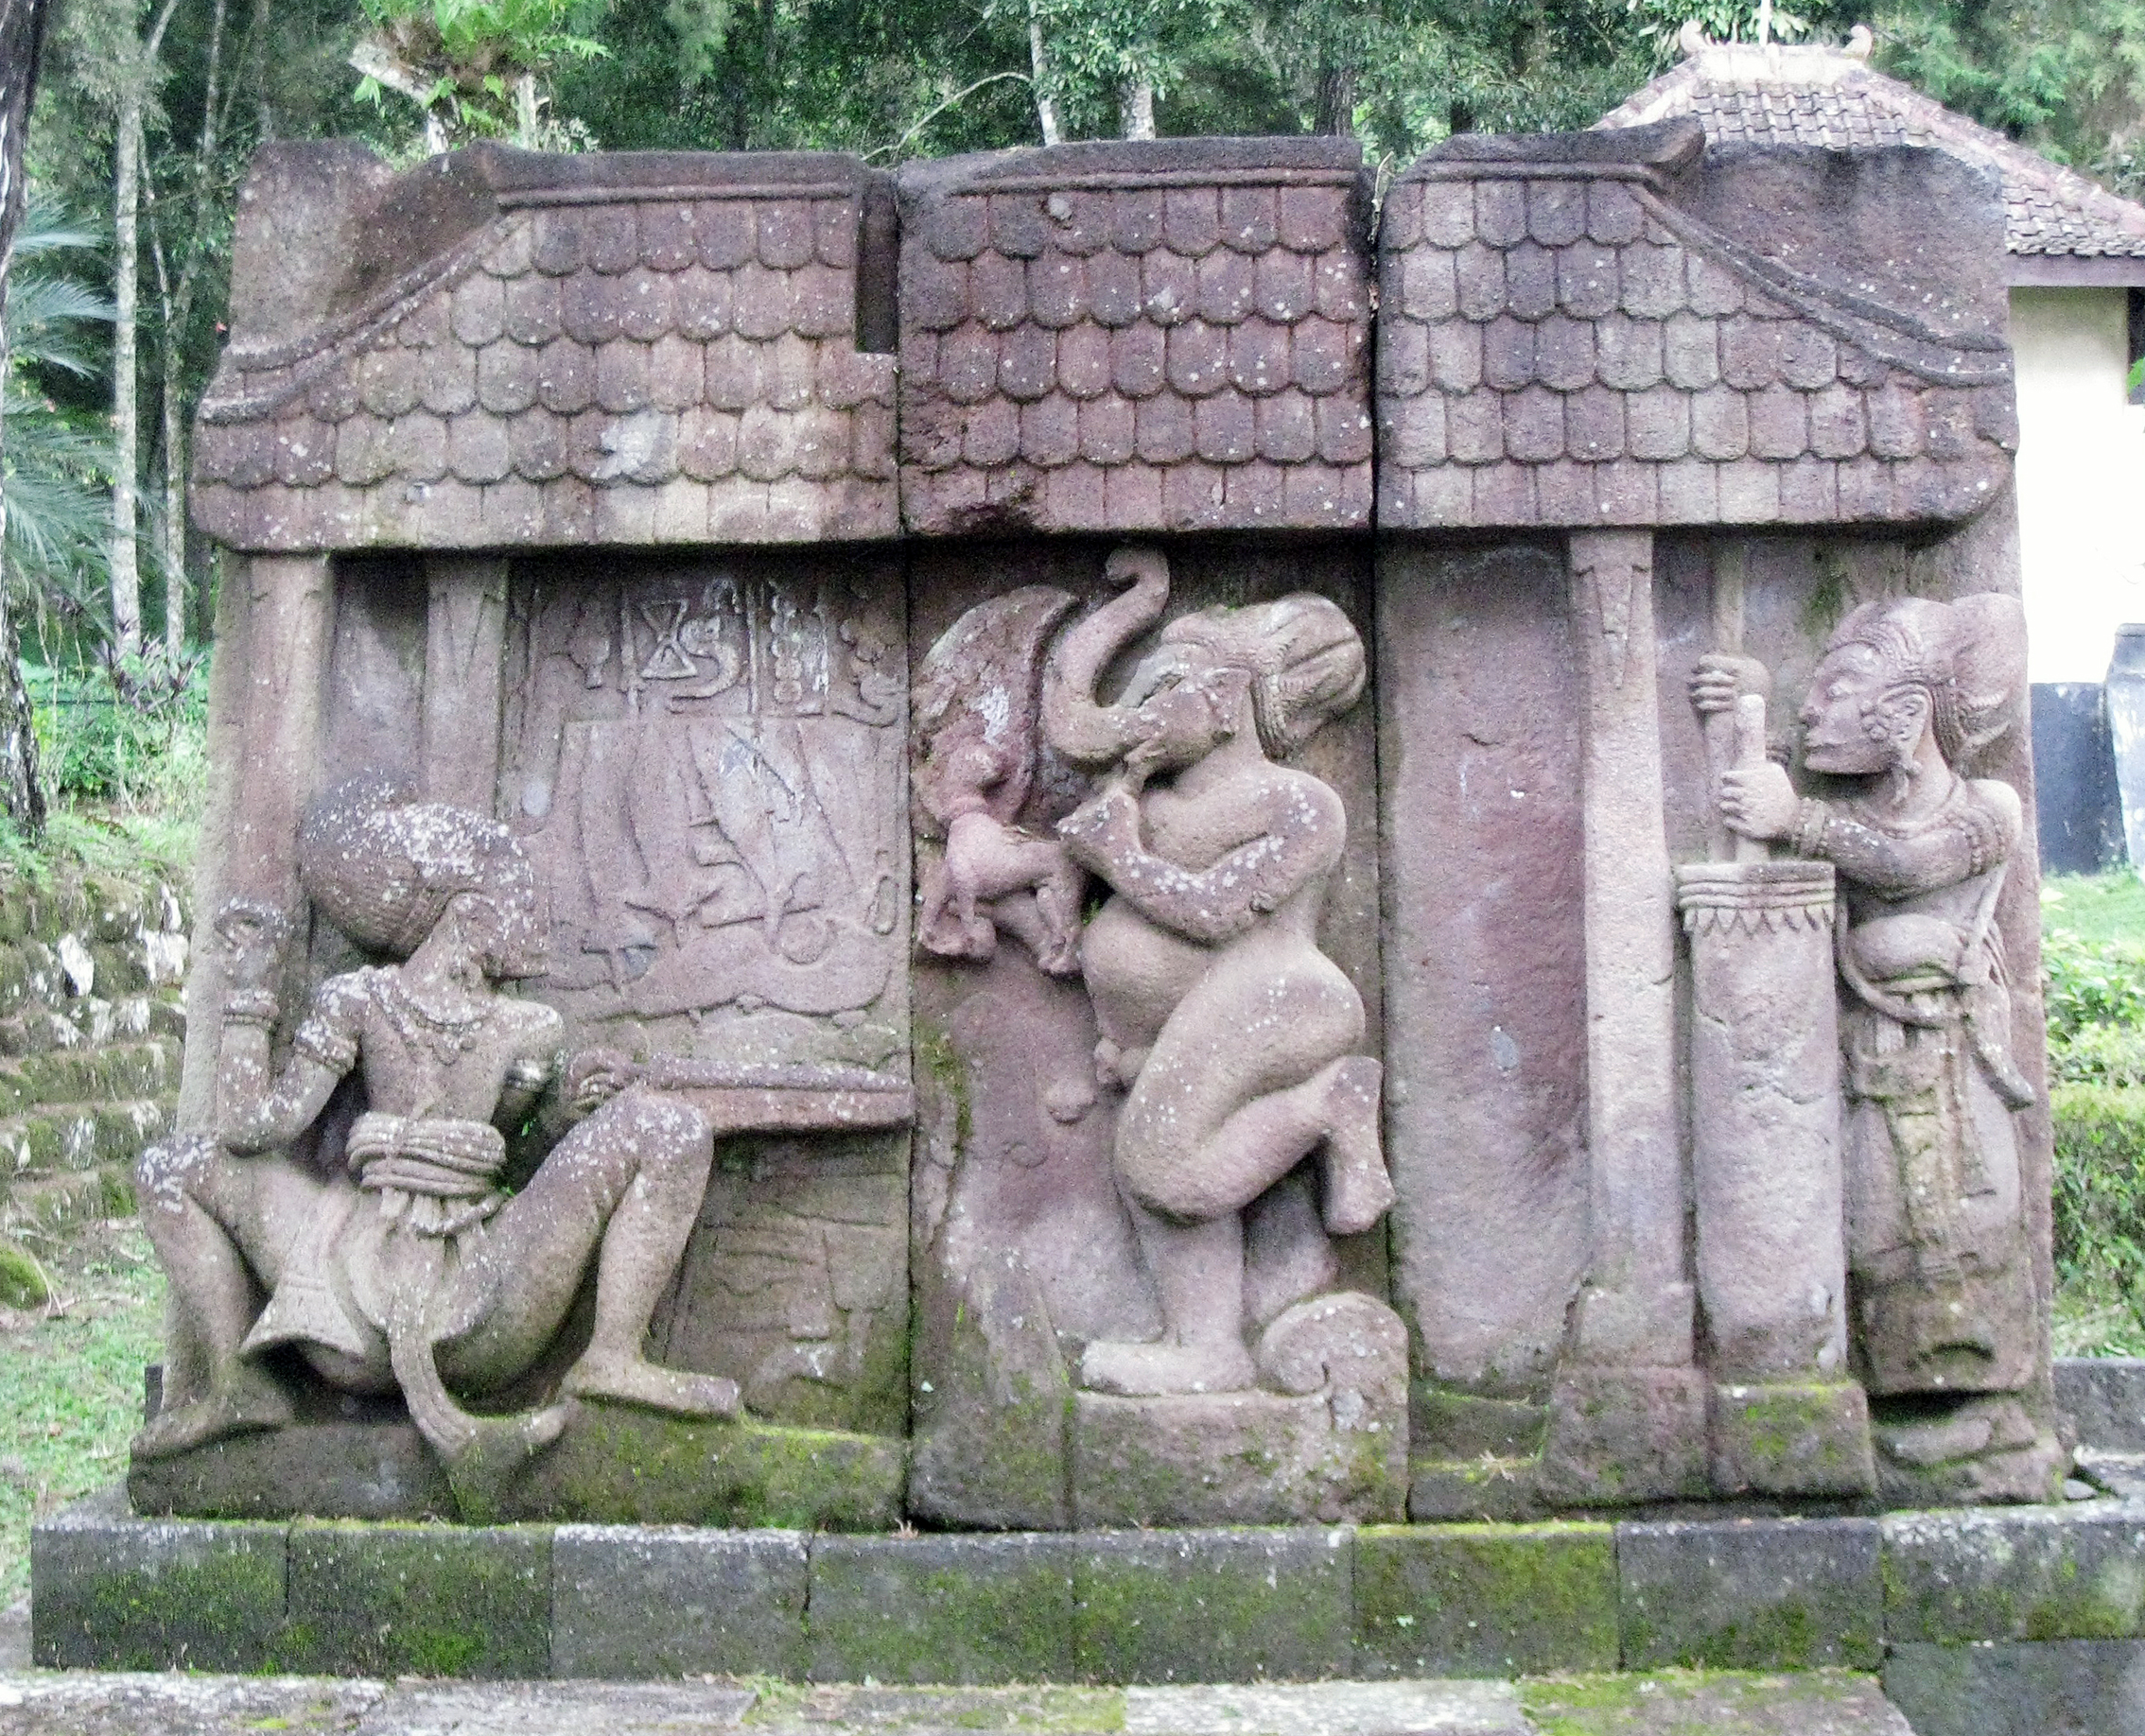 The bas relief in the Sukuh Temple in Java, which archaeologists say was built in AD 1361. The three scenes depict the Hindu god Bhima (left) as a blacksmith forging the metal, while his brother Arjuna (right) pumps air into the furnace. The elephant god Ganesha watches over the process in the centre. Photo credit: Wikimedia